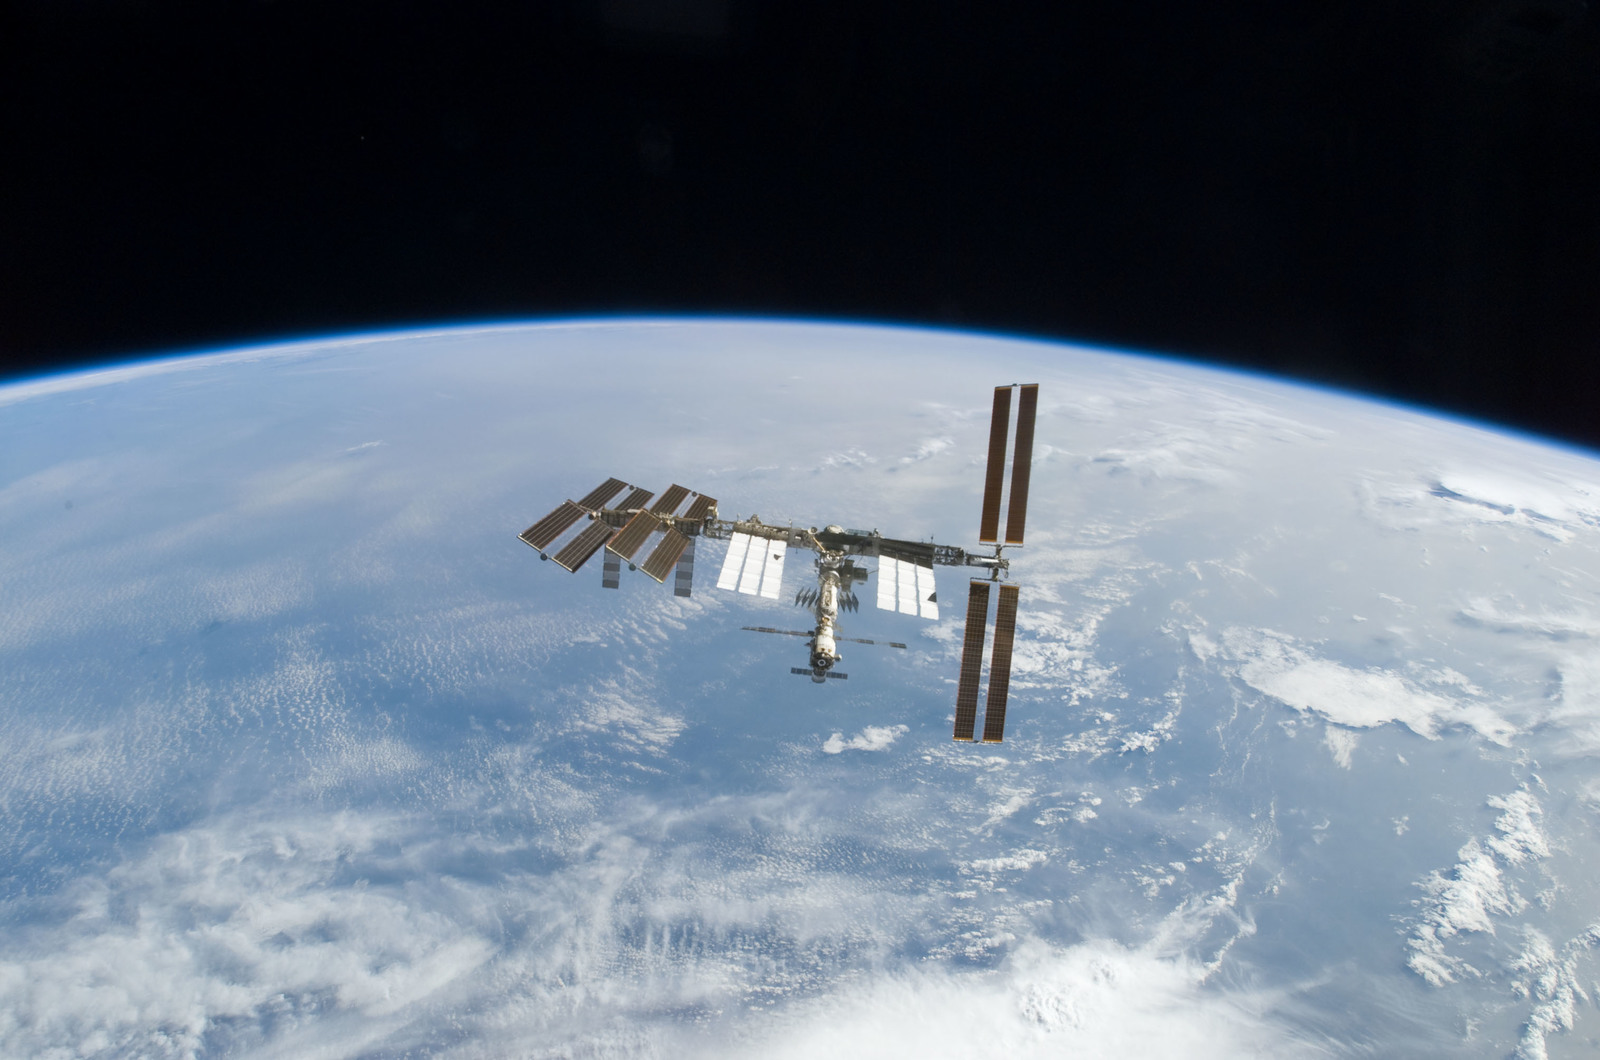 S122E010946 - STS-122 - View of ISS after STS-122 Undocking